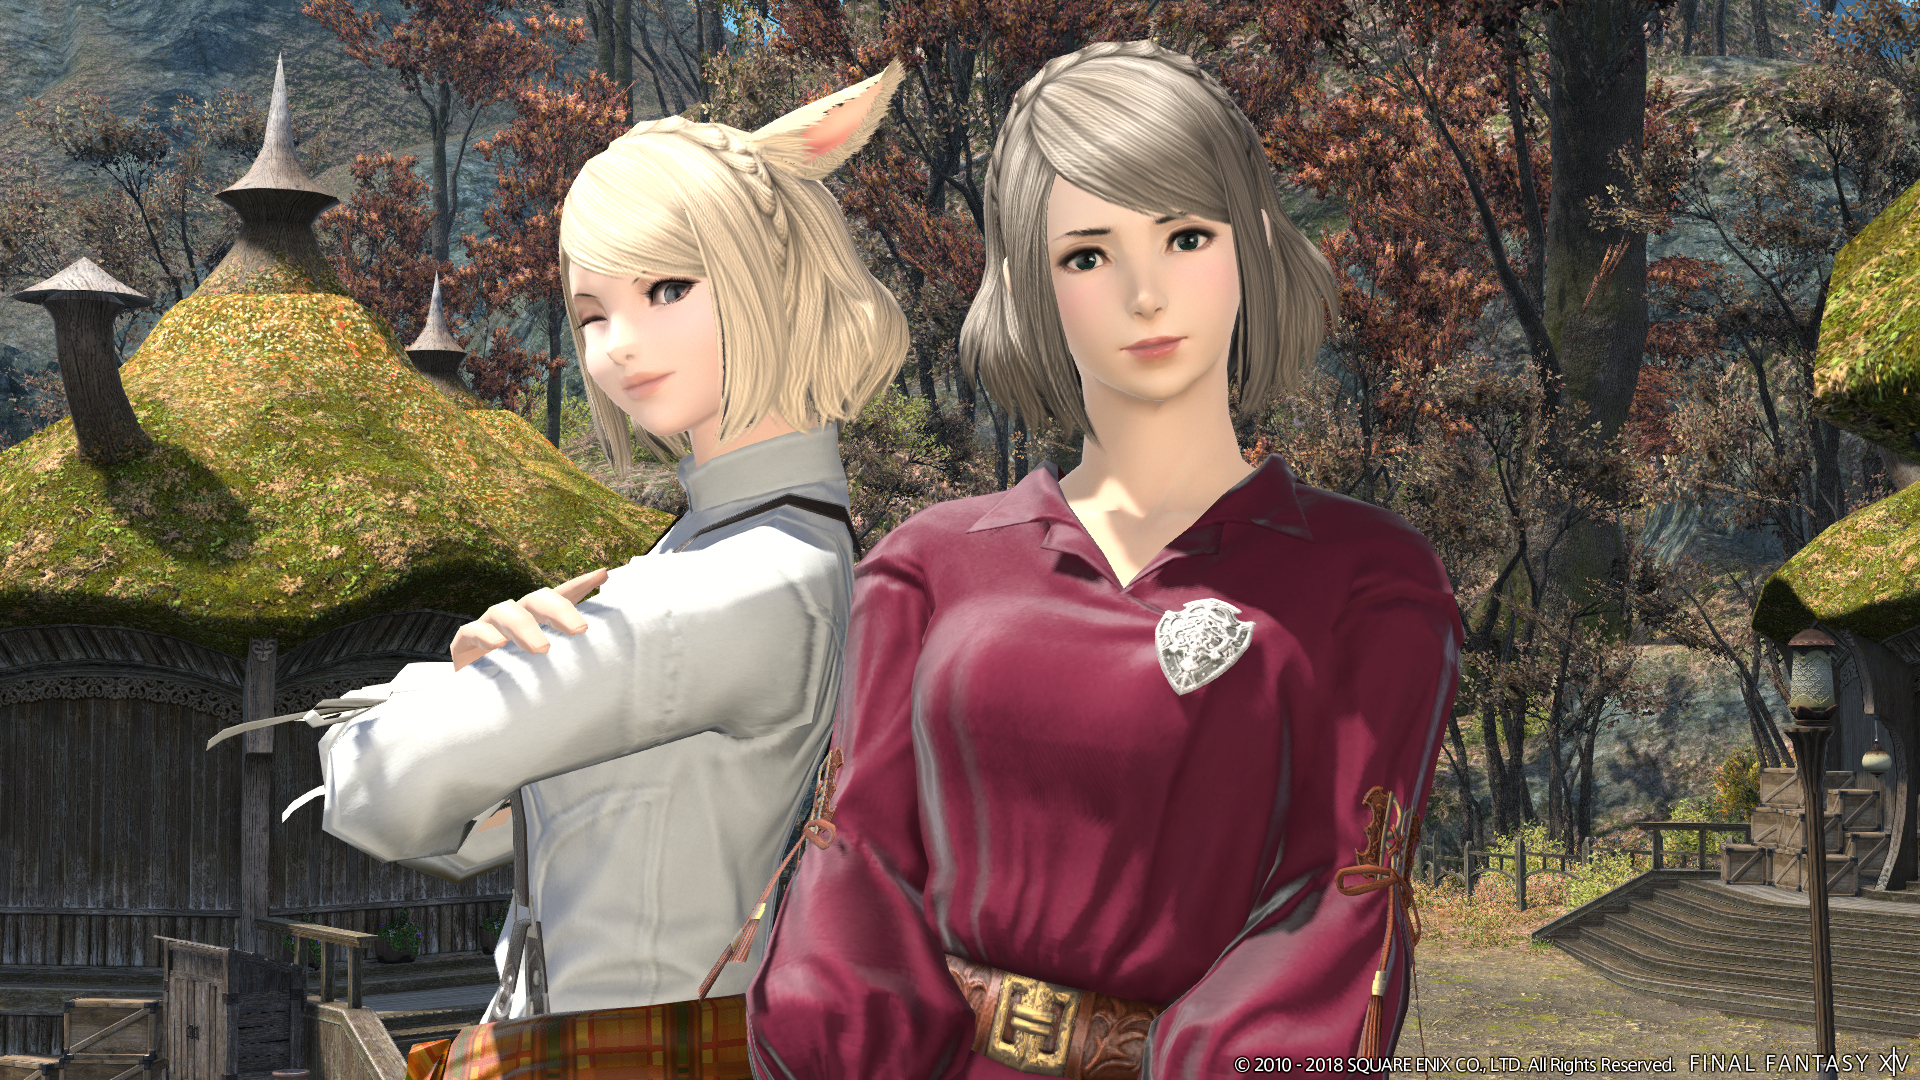 Final Fantasy XIV's 4 45 patch is live with Eureka Pyros and